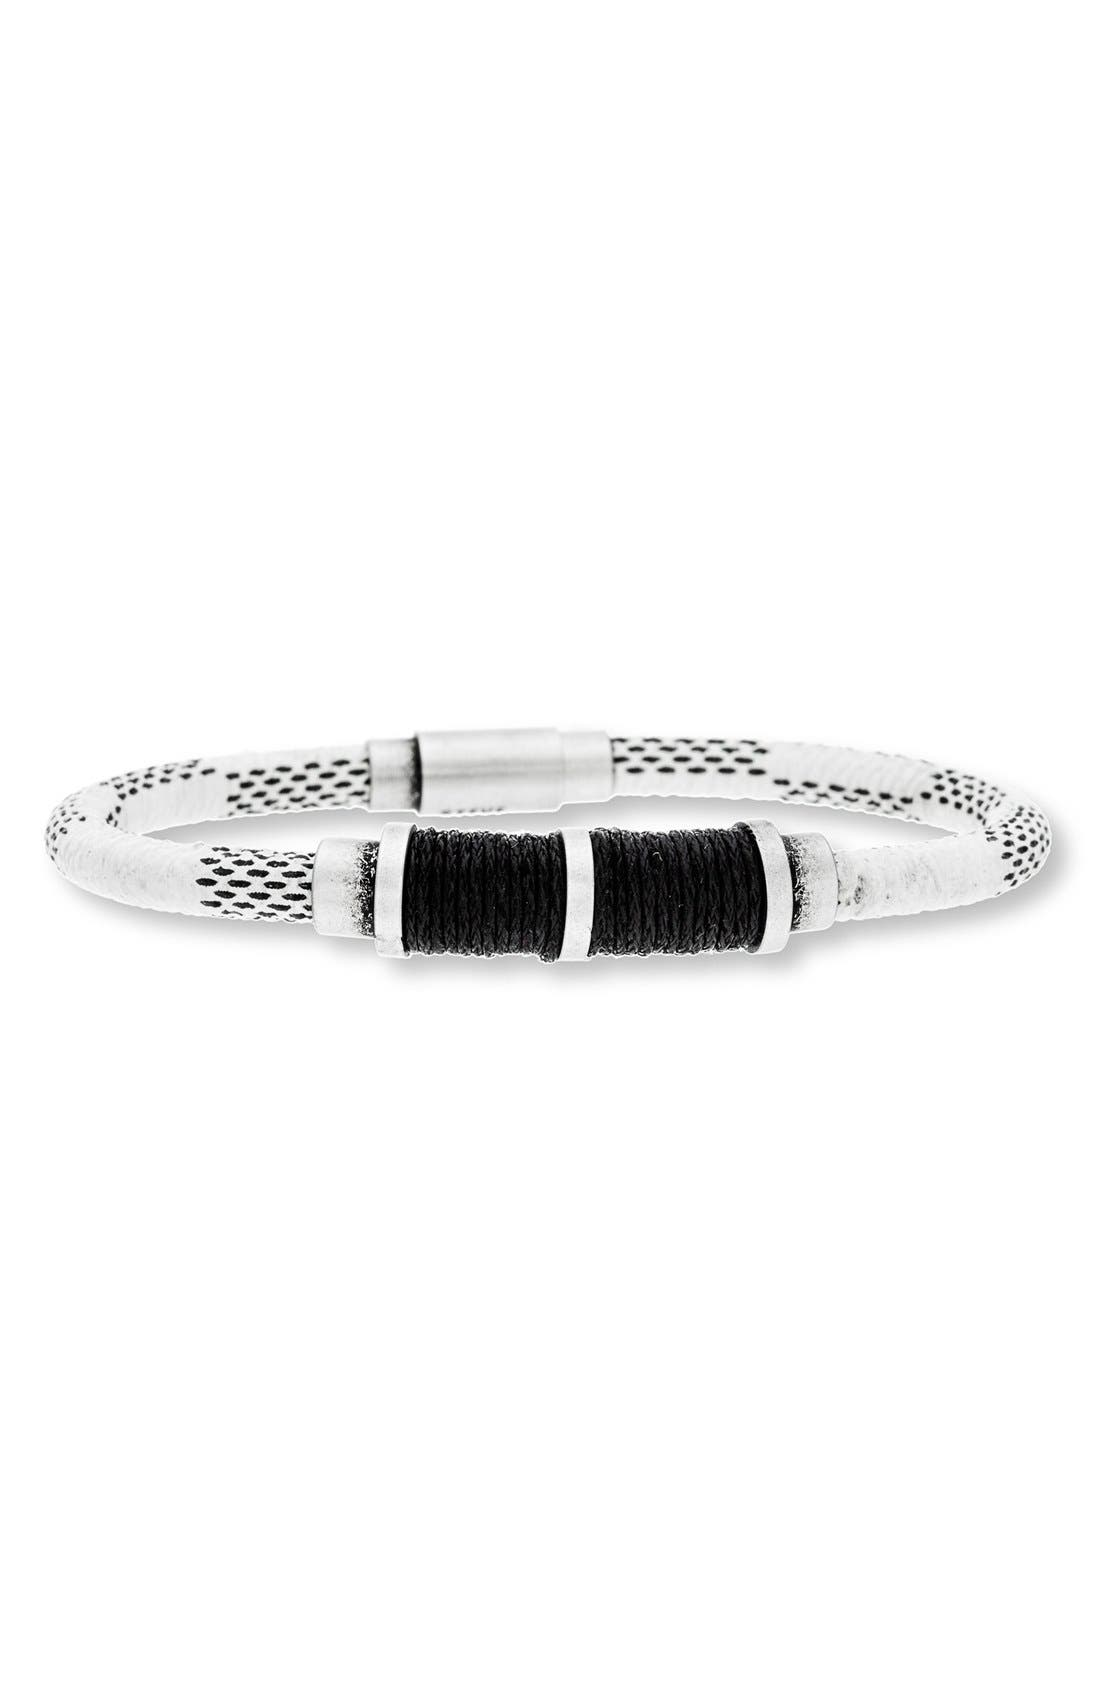 Steve Madden Stainless Steel & Leather Bracelet